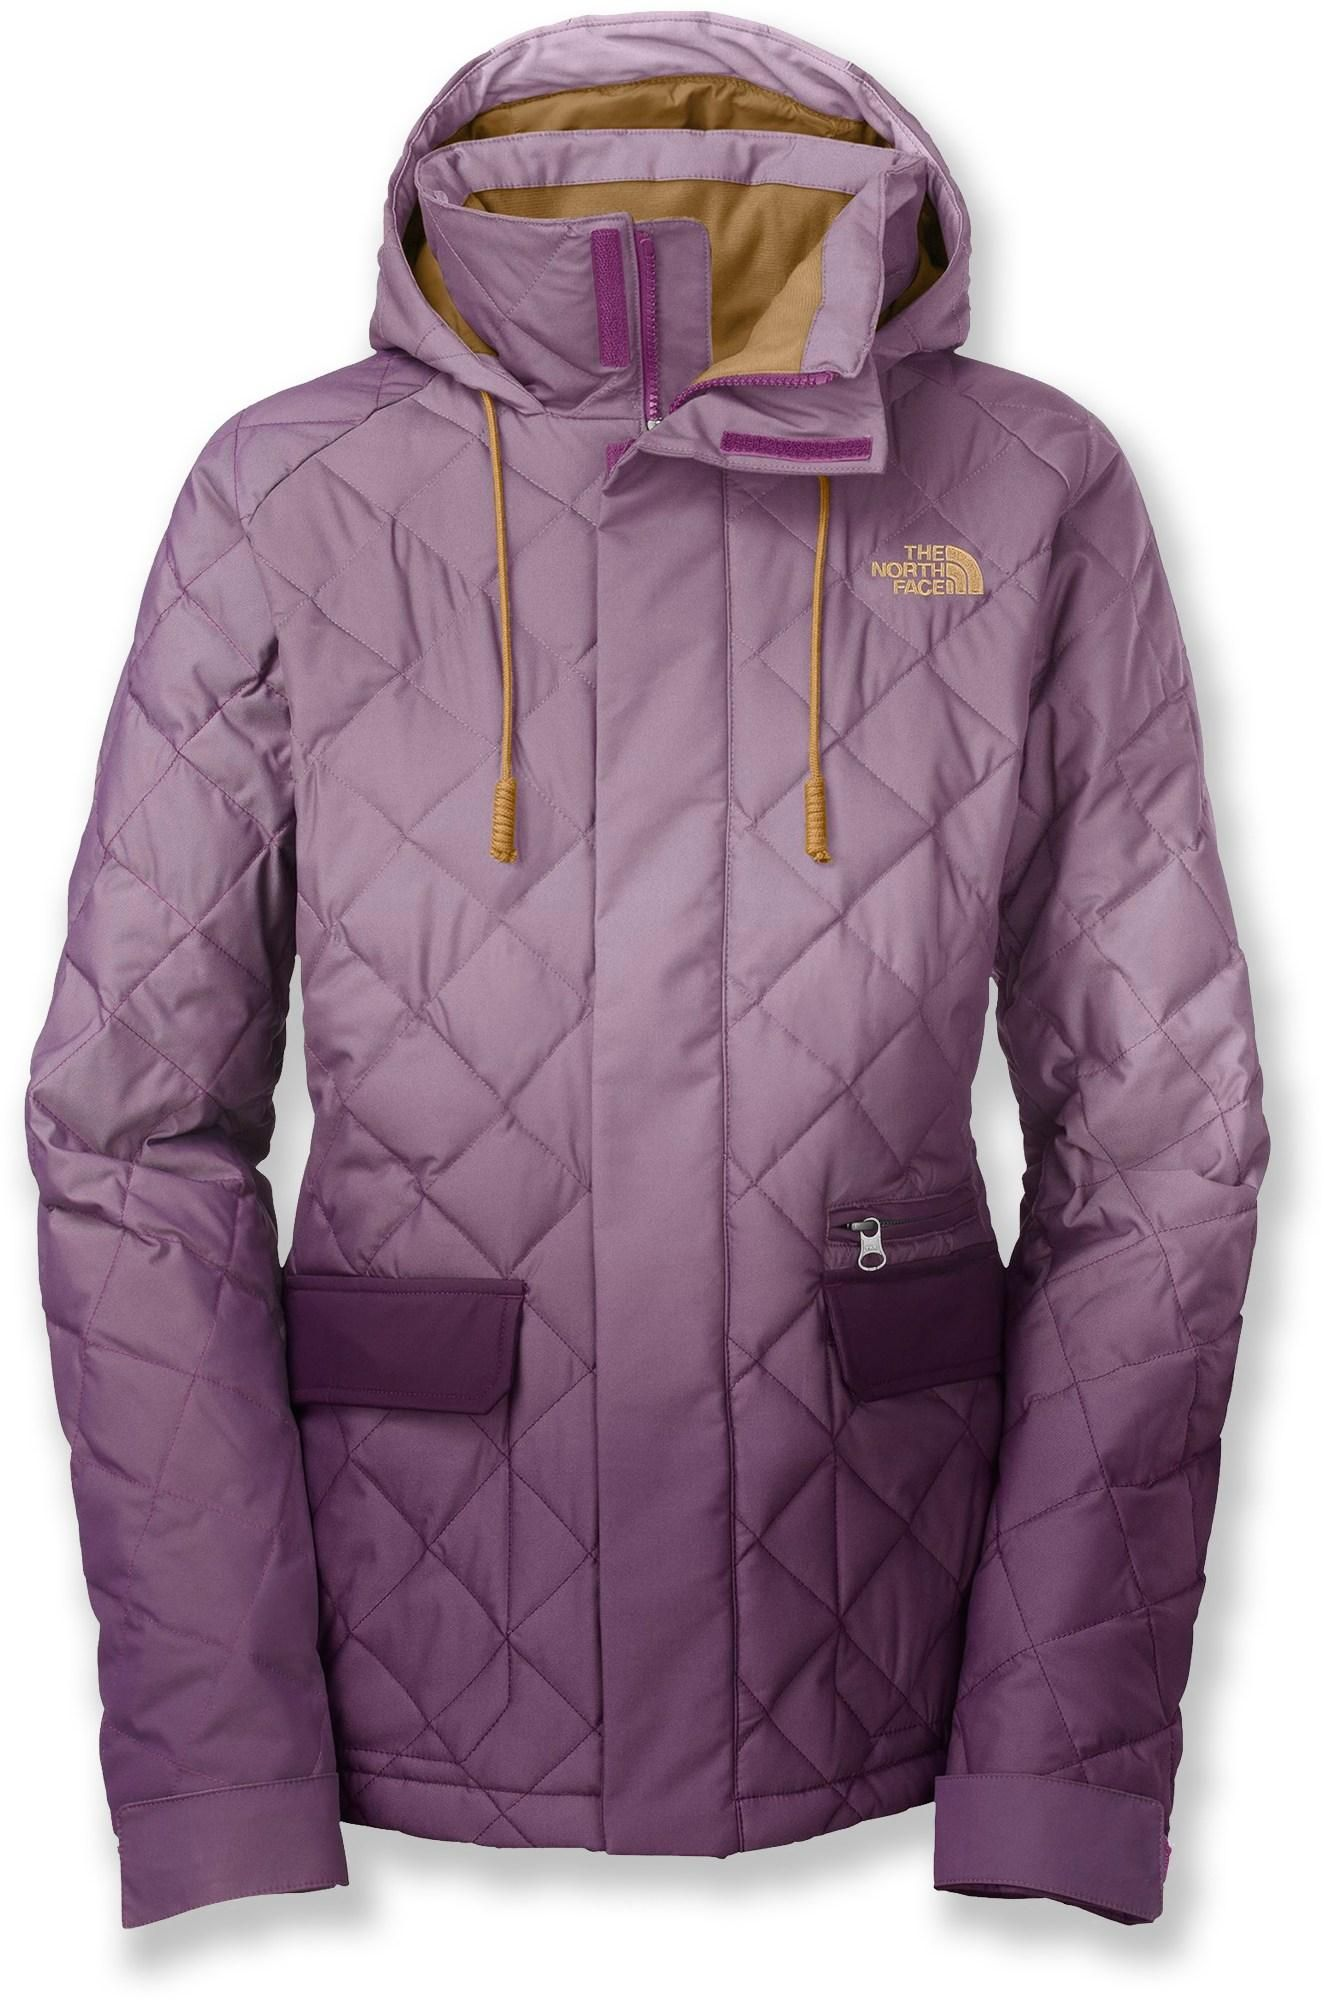 61645adf5eb9 Ombre jacket! The North Face First Day Down Insulated Jacket - Women s.